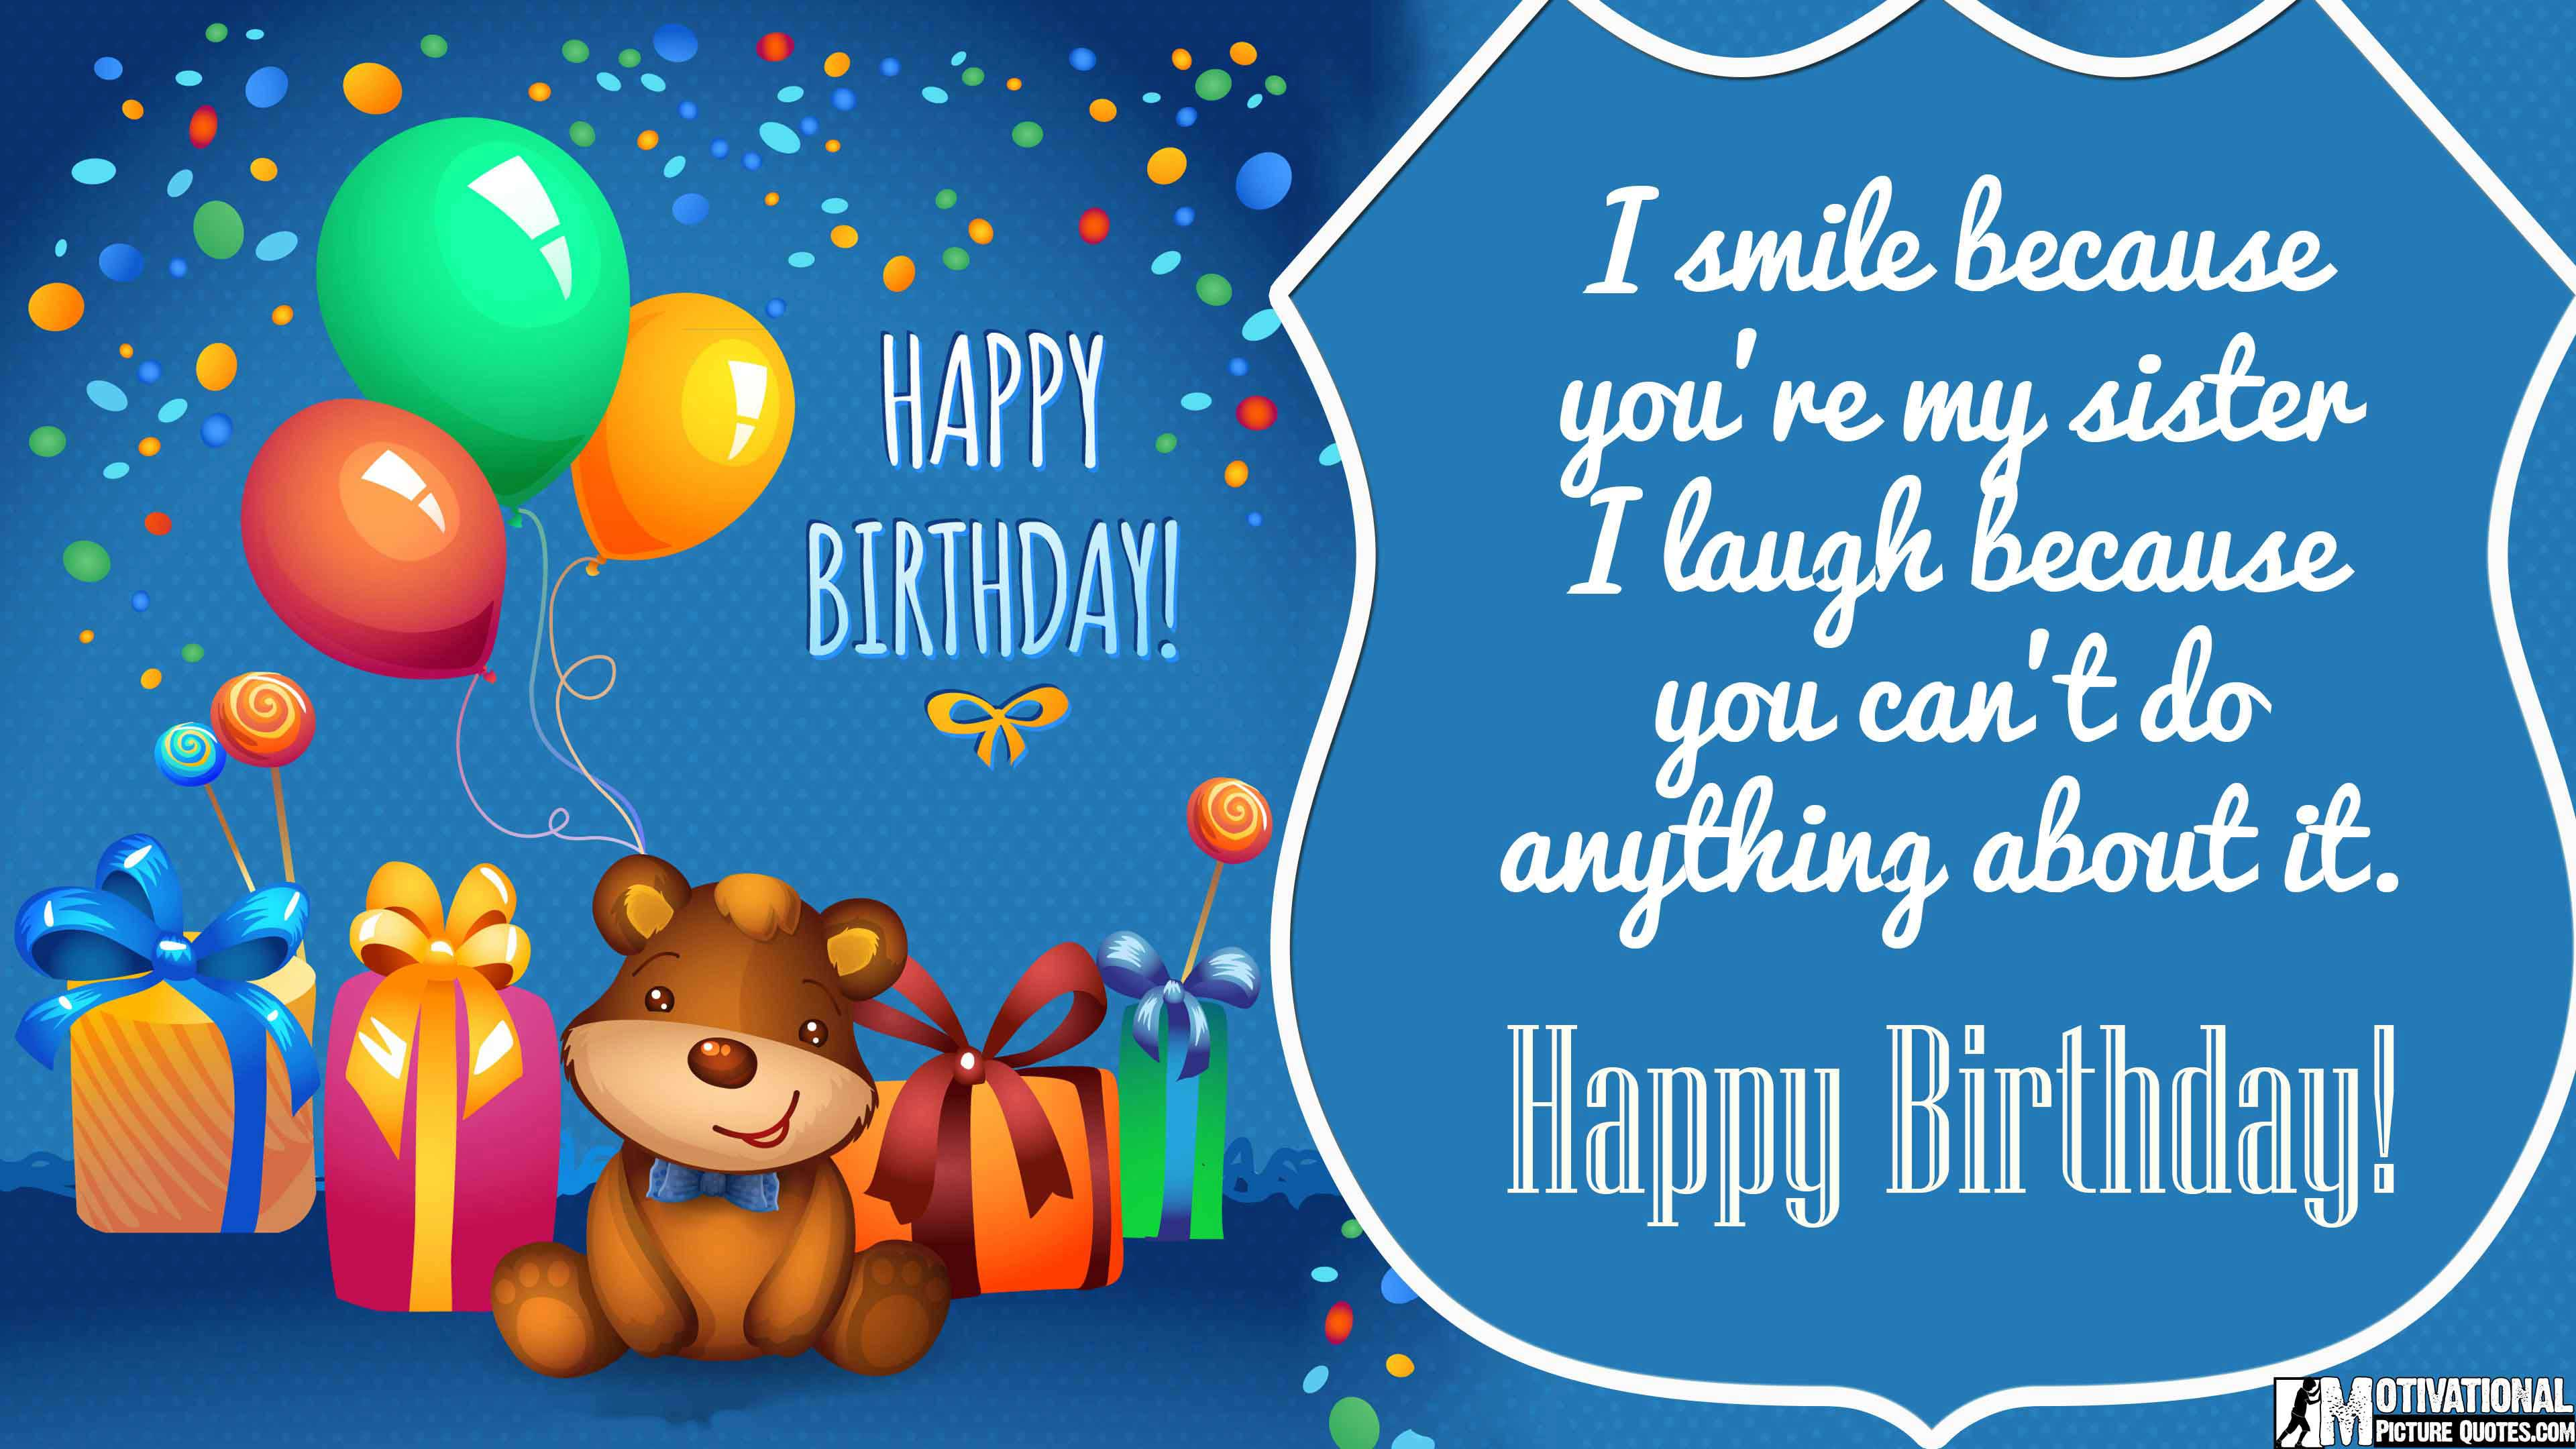 birthday greetings inspirational message ; Inspirational-Birthday-Cards-and-get-ideas-how-to-make-exceptional-birthday-Card-appearance-13